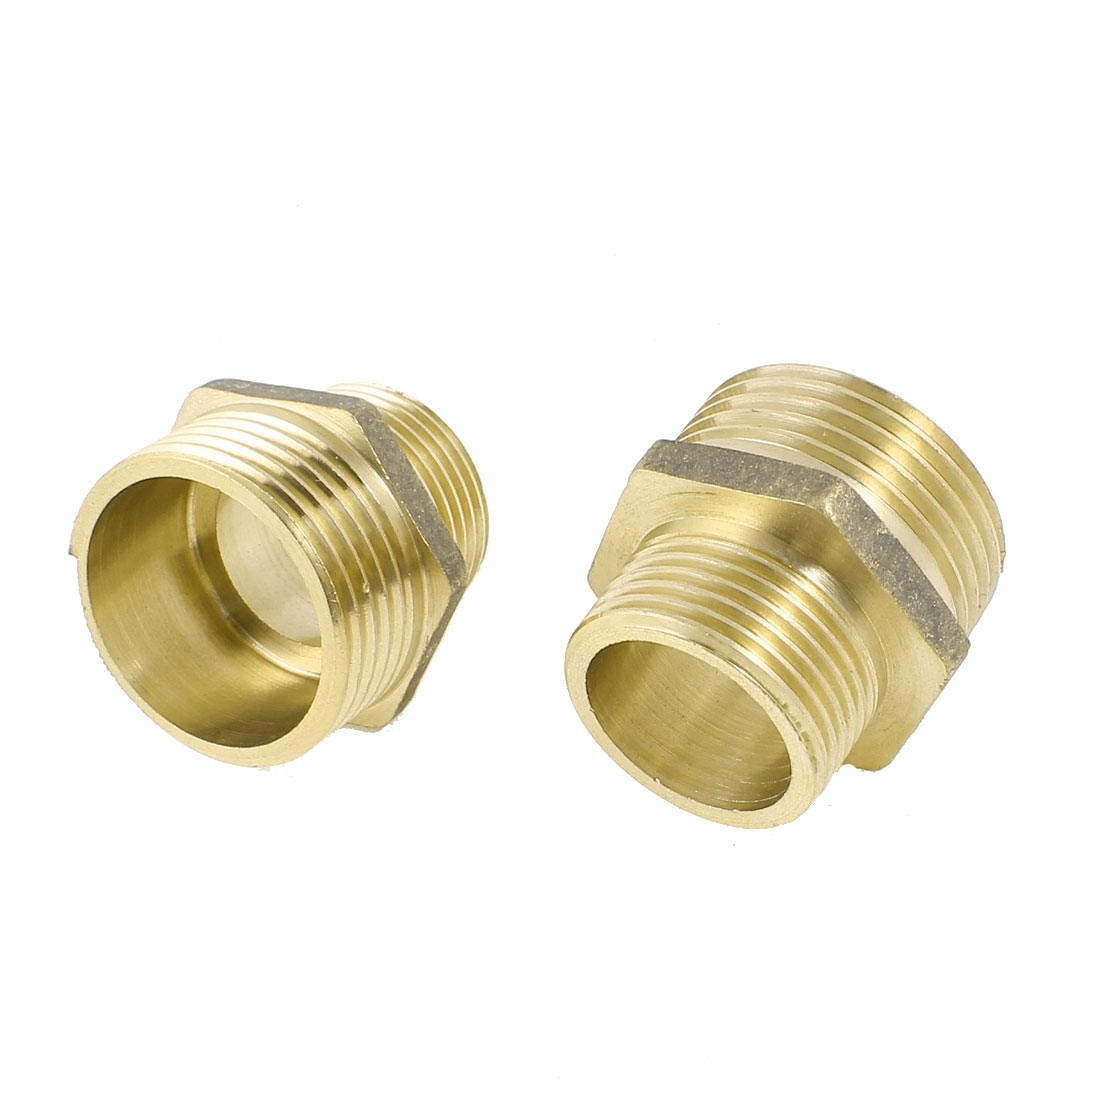 2PCS Hydraulic 3/4PT Male to 1PT Male Thread Pipe Hex Reducing Bushing Adapter